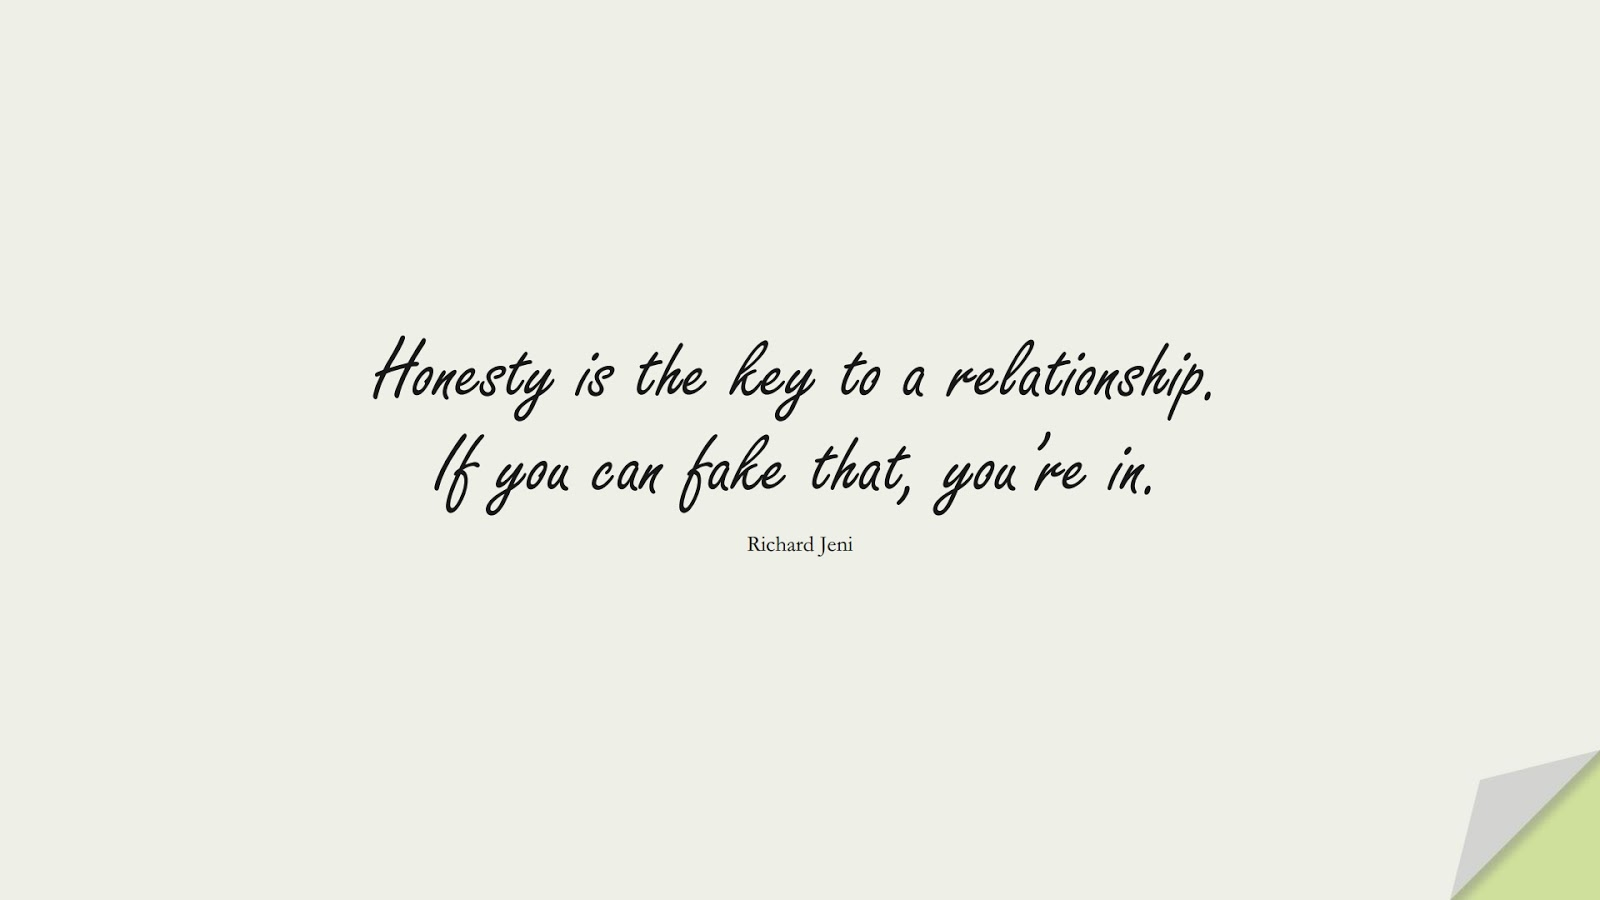 Honesty is the key to a relationship. If you can fake that, you're in. (Richard Jeni);  #LoveQuotes